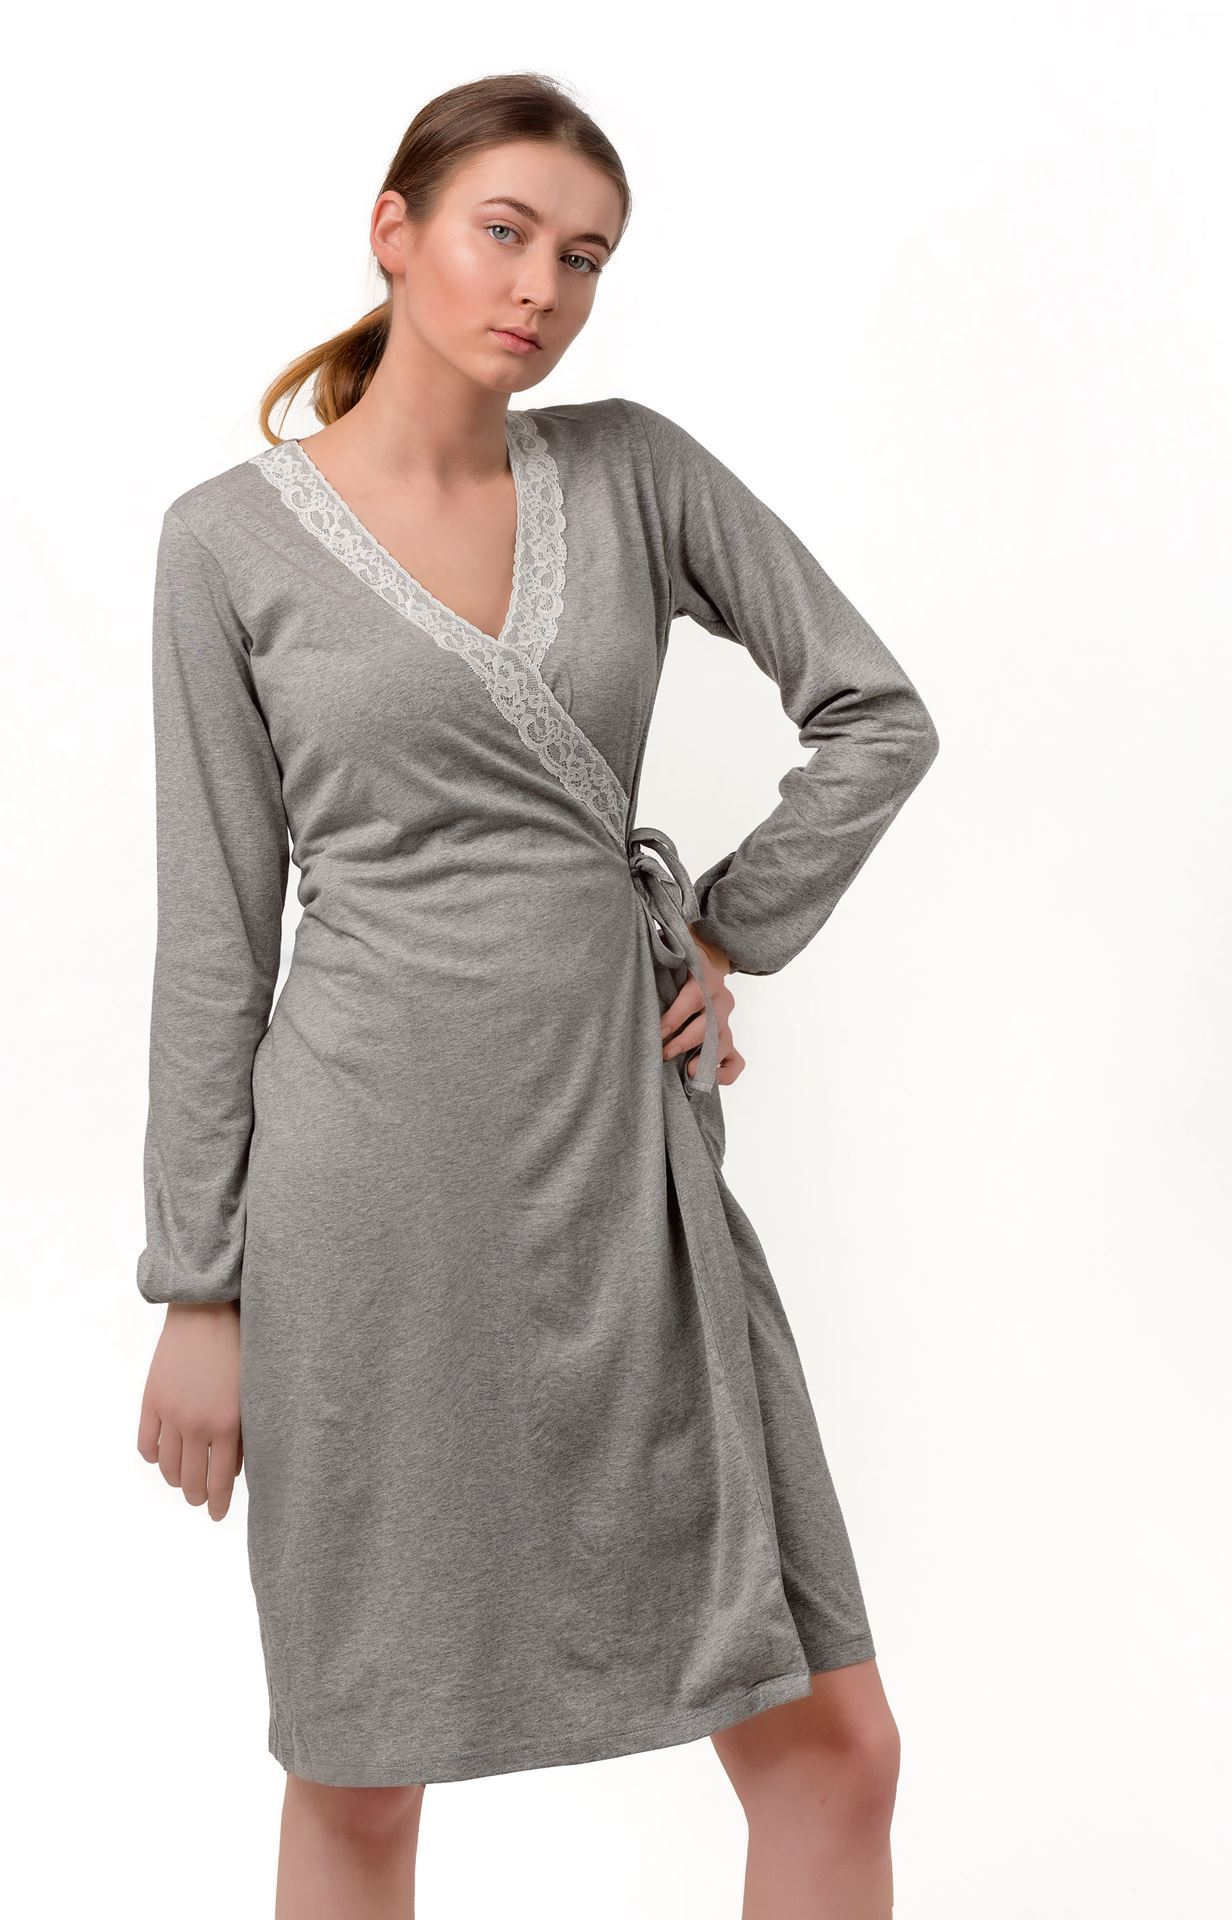 Picture of Night dress overlapping for pregnant woman